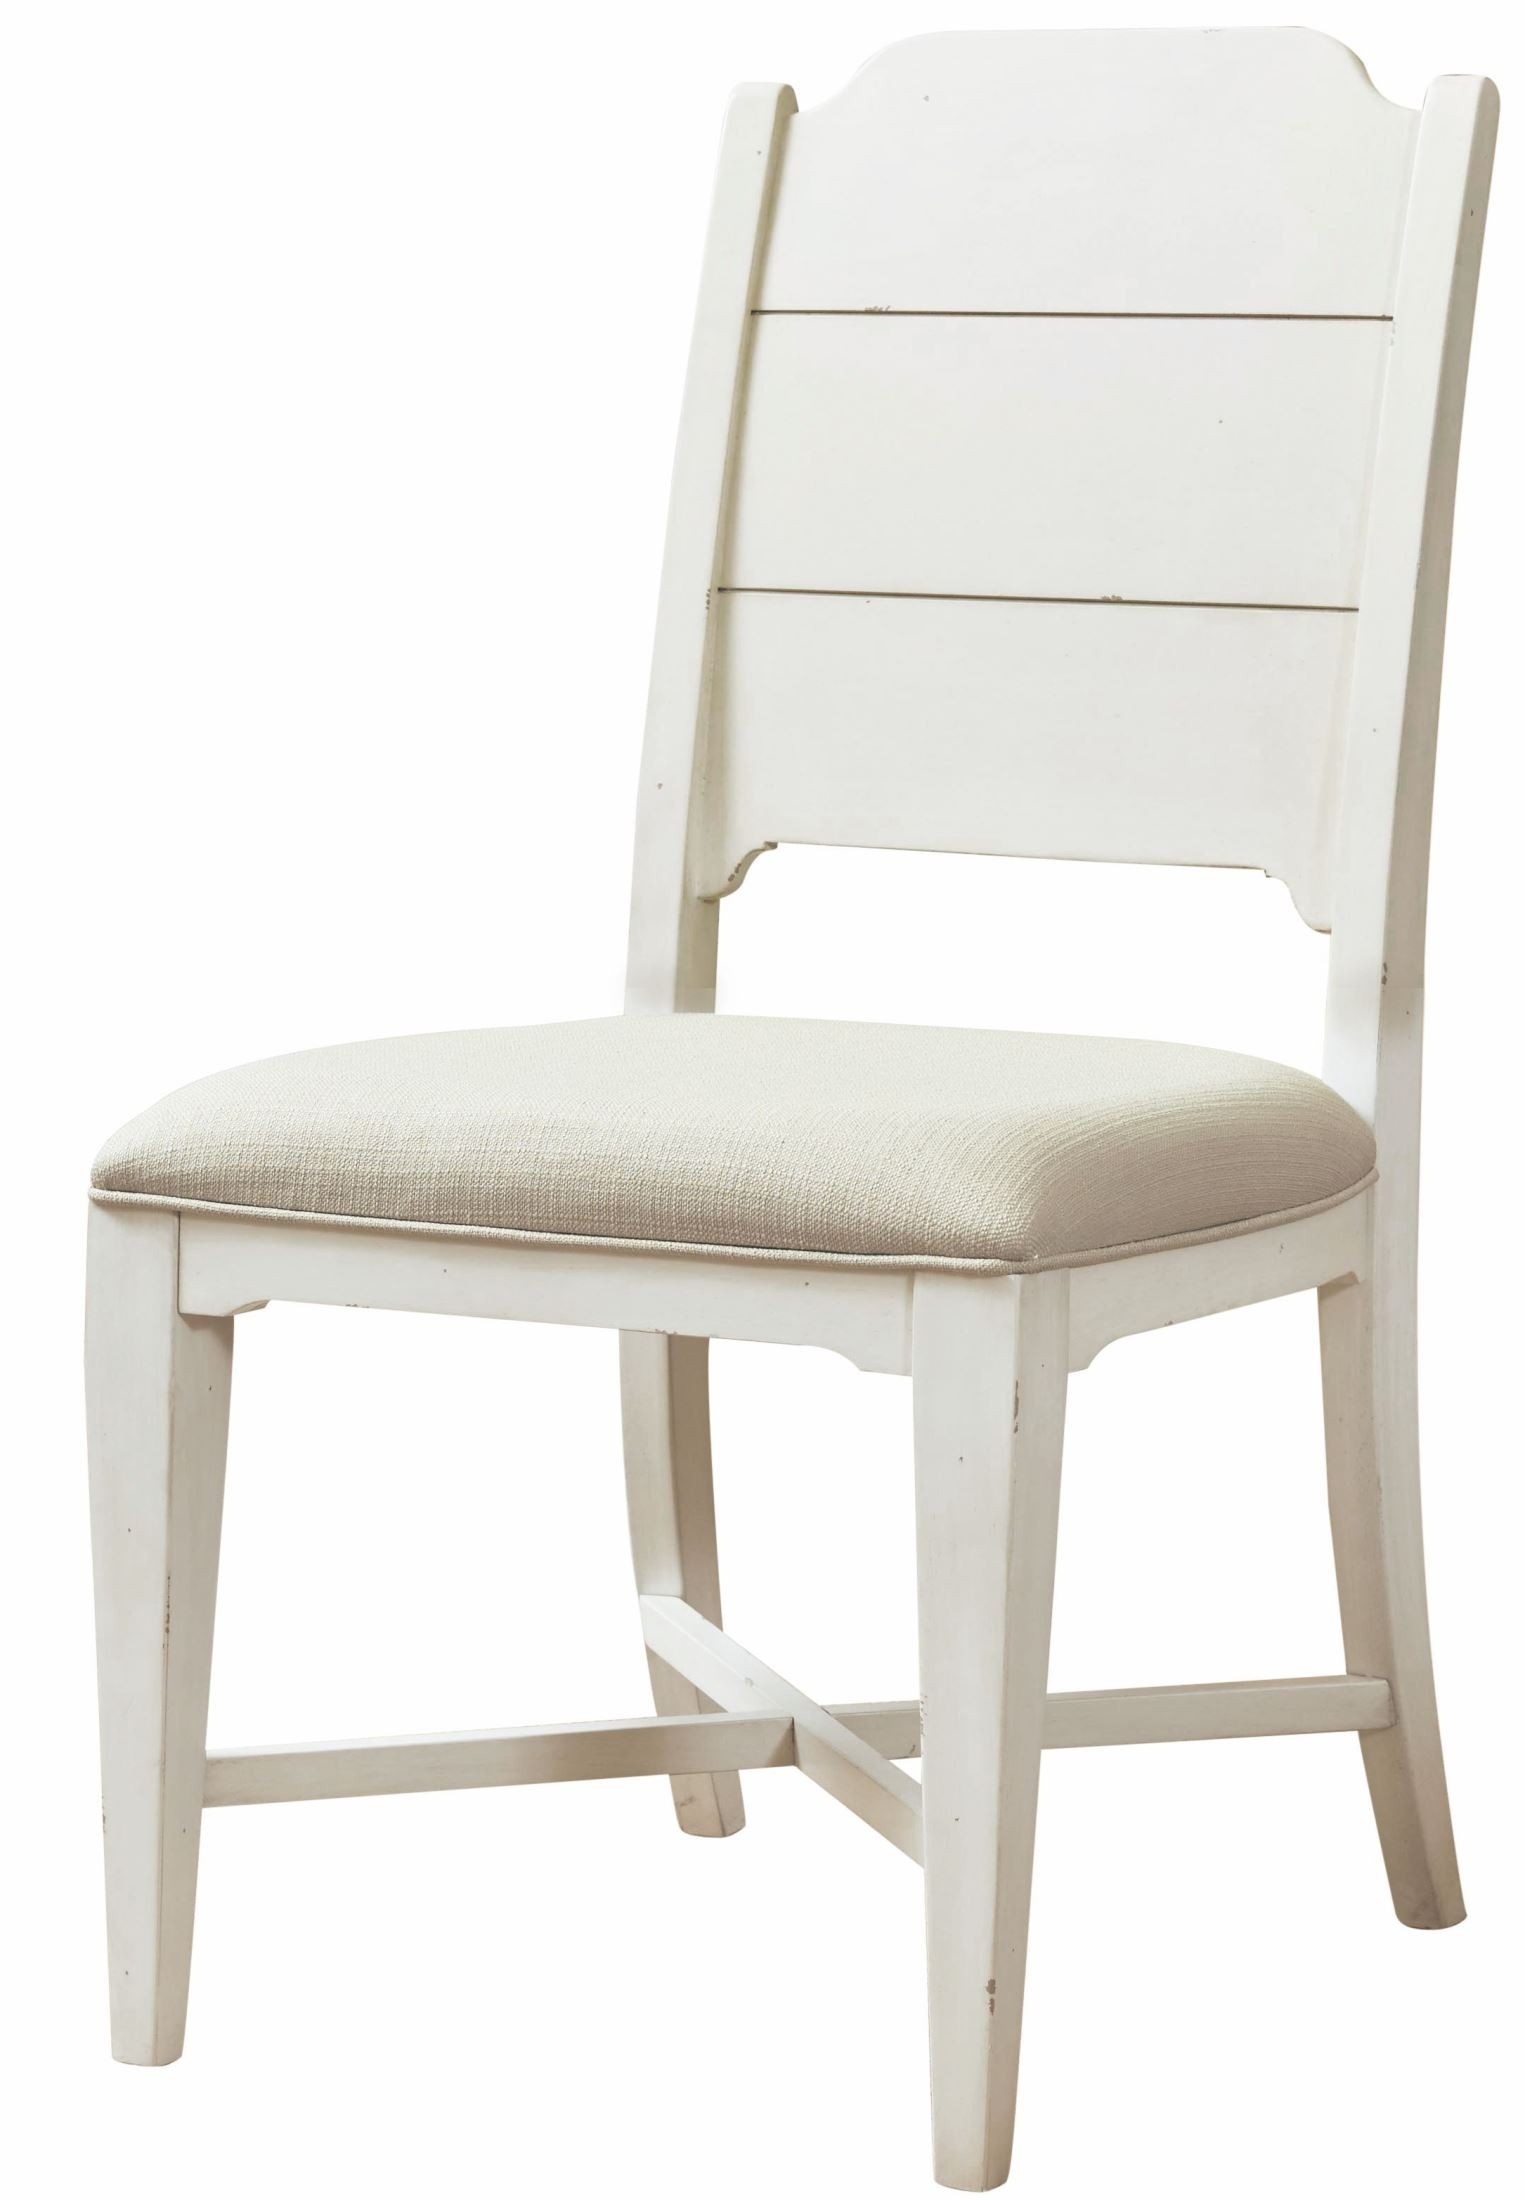 antique white dining chairs outdoor rattan papasan chair with cushion coventry lane side set of 2